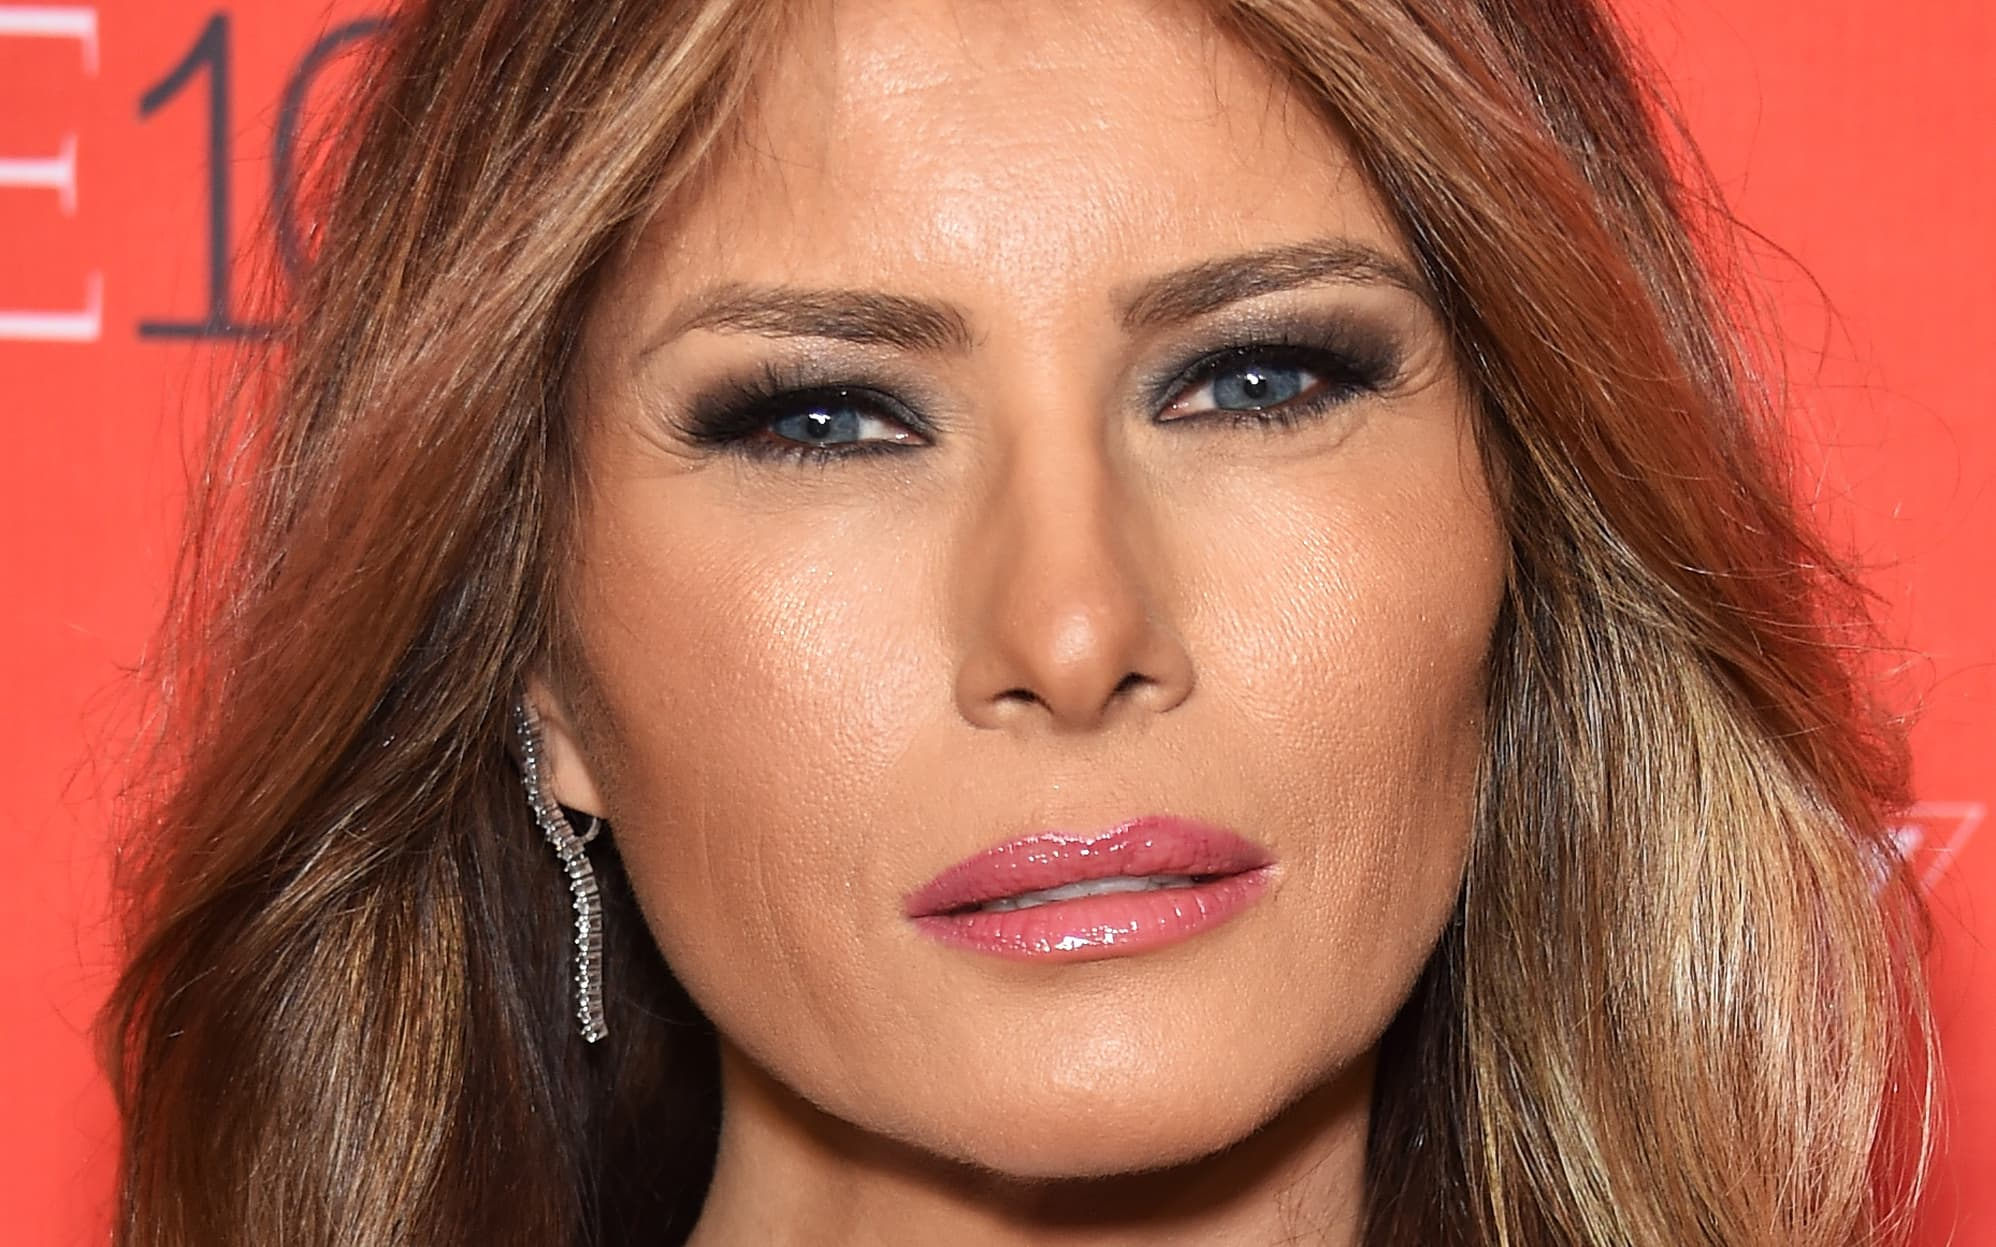 Melania Trump Before Her Plastic Surgery photo - 1